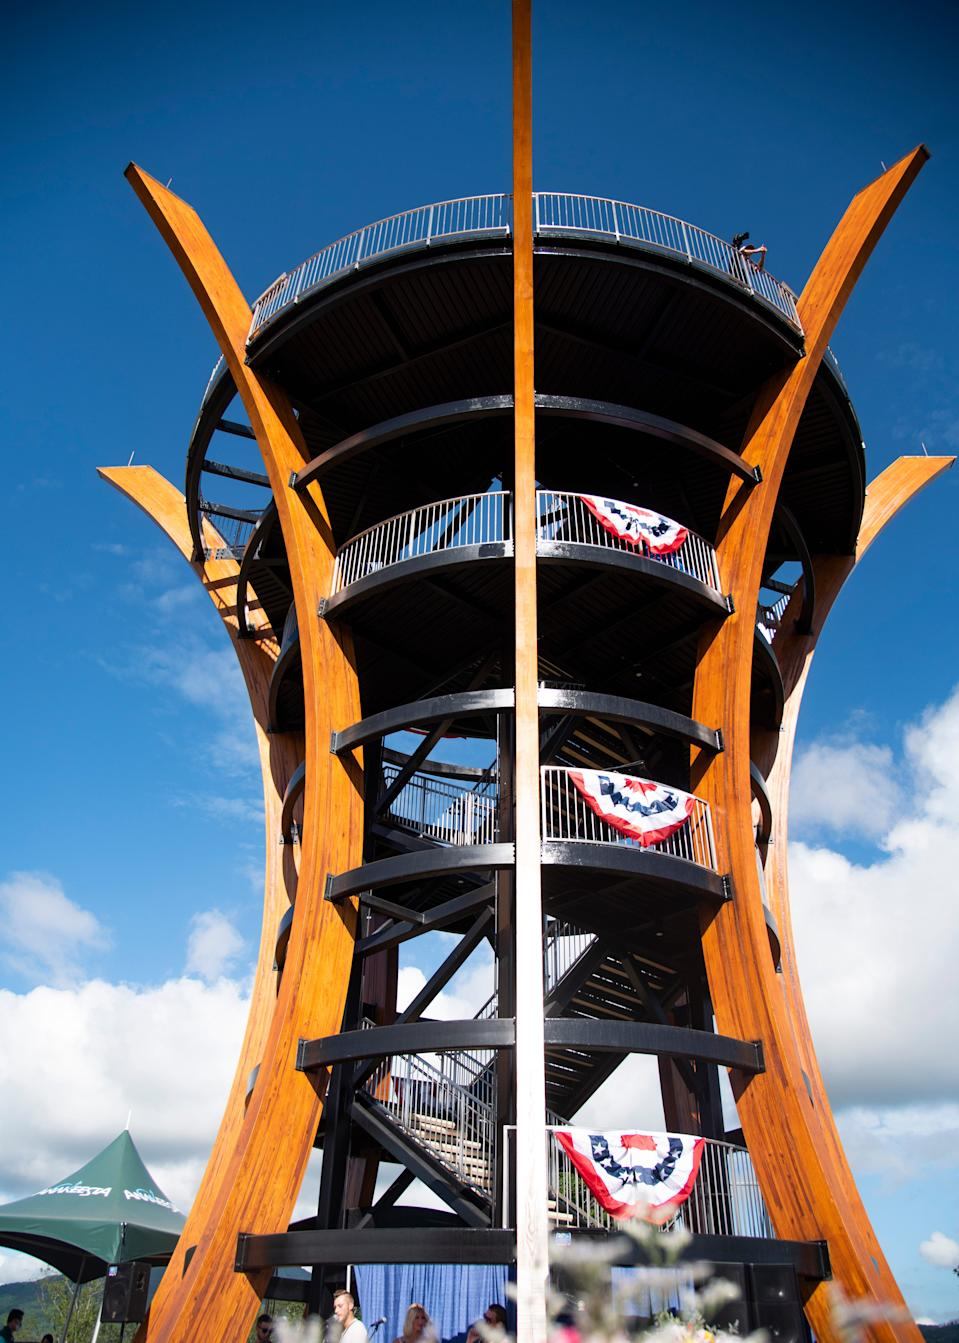 The flower inspired 360-degree view tower, AnaVista Tower, at its grand opening at Anakeesta in Gatlinburg, Tenn., on Wednesday, July 8, 2020.